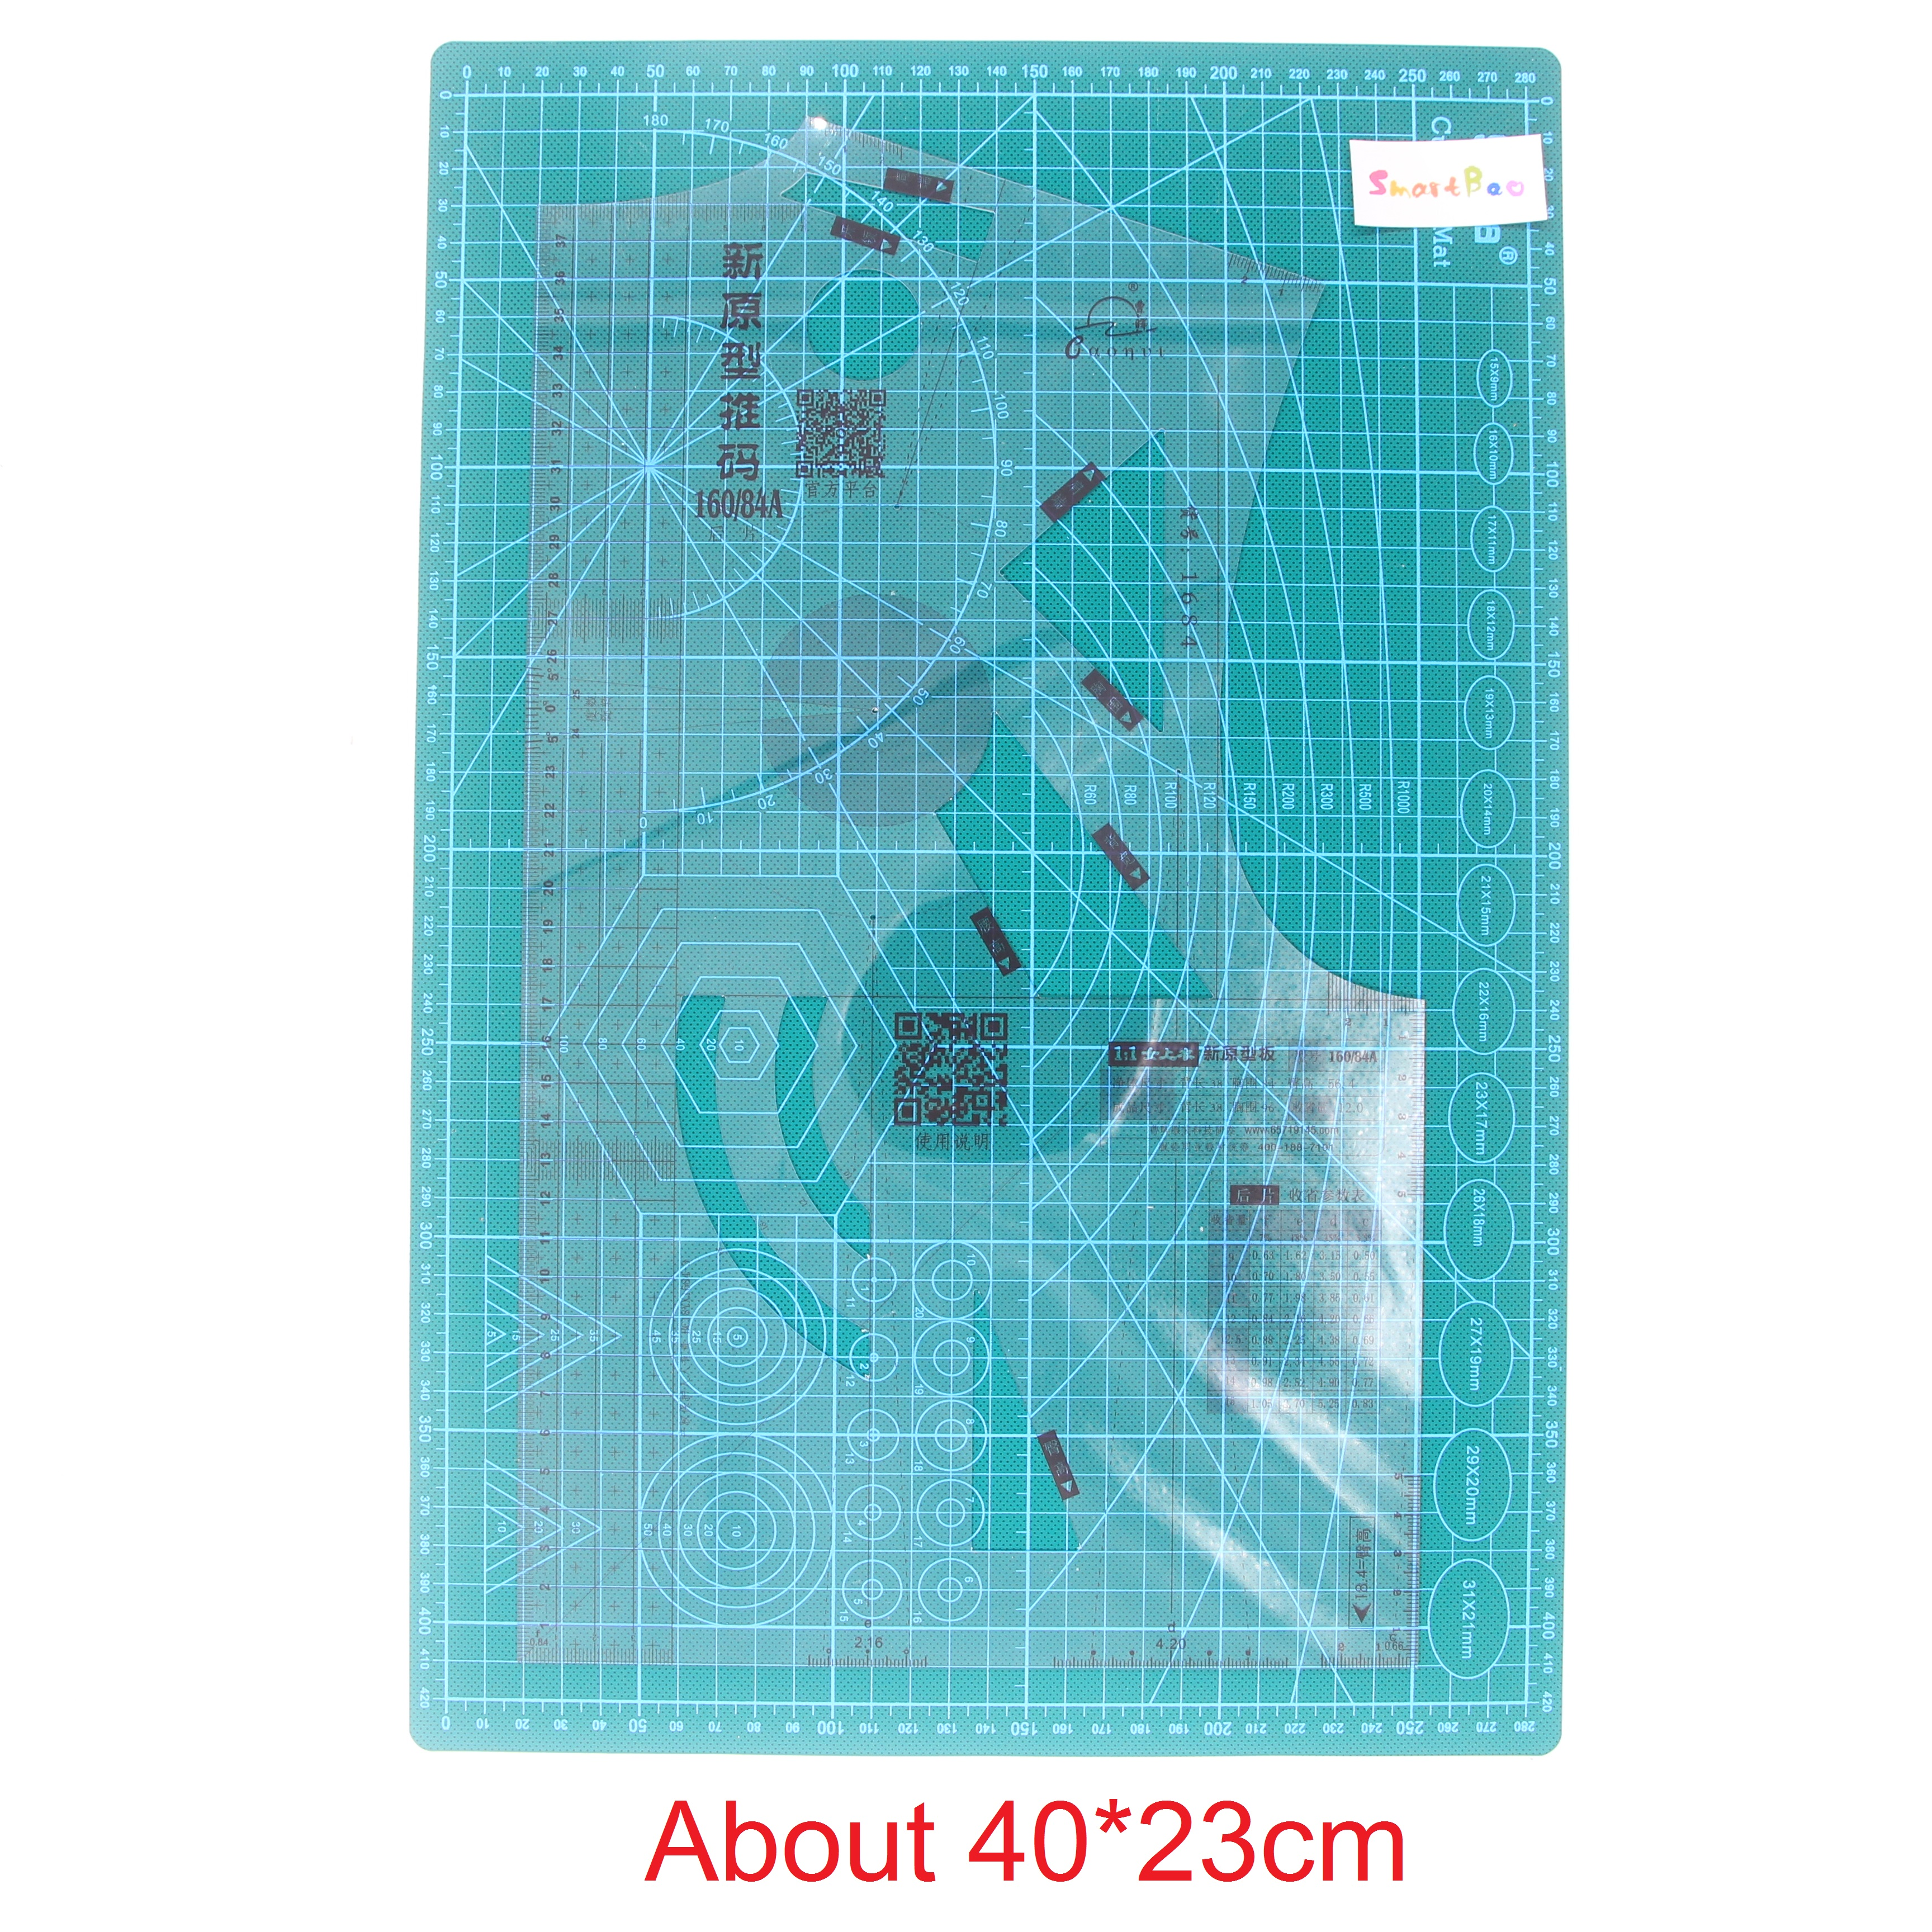 1:1 Fashion Design Ruler Cloth Design School Student Teching Apparel Drawing Templete Garment Prototype Rulers